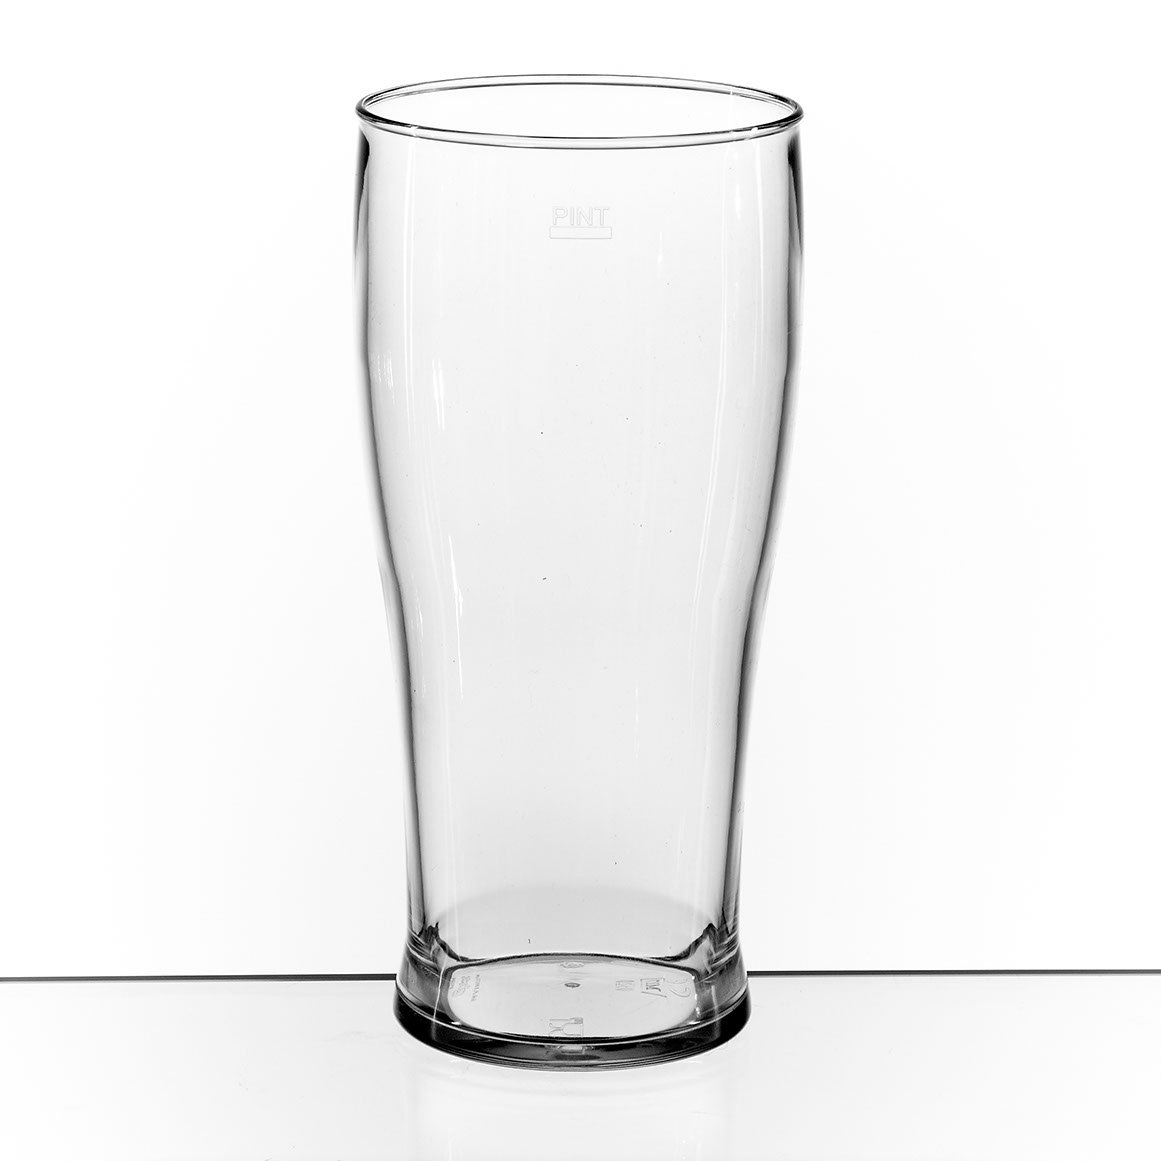 Set of 4 Elite Polycarbonate Tulip Pint Tumblers 22oz CE Lined at 20oz